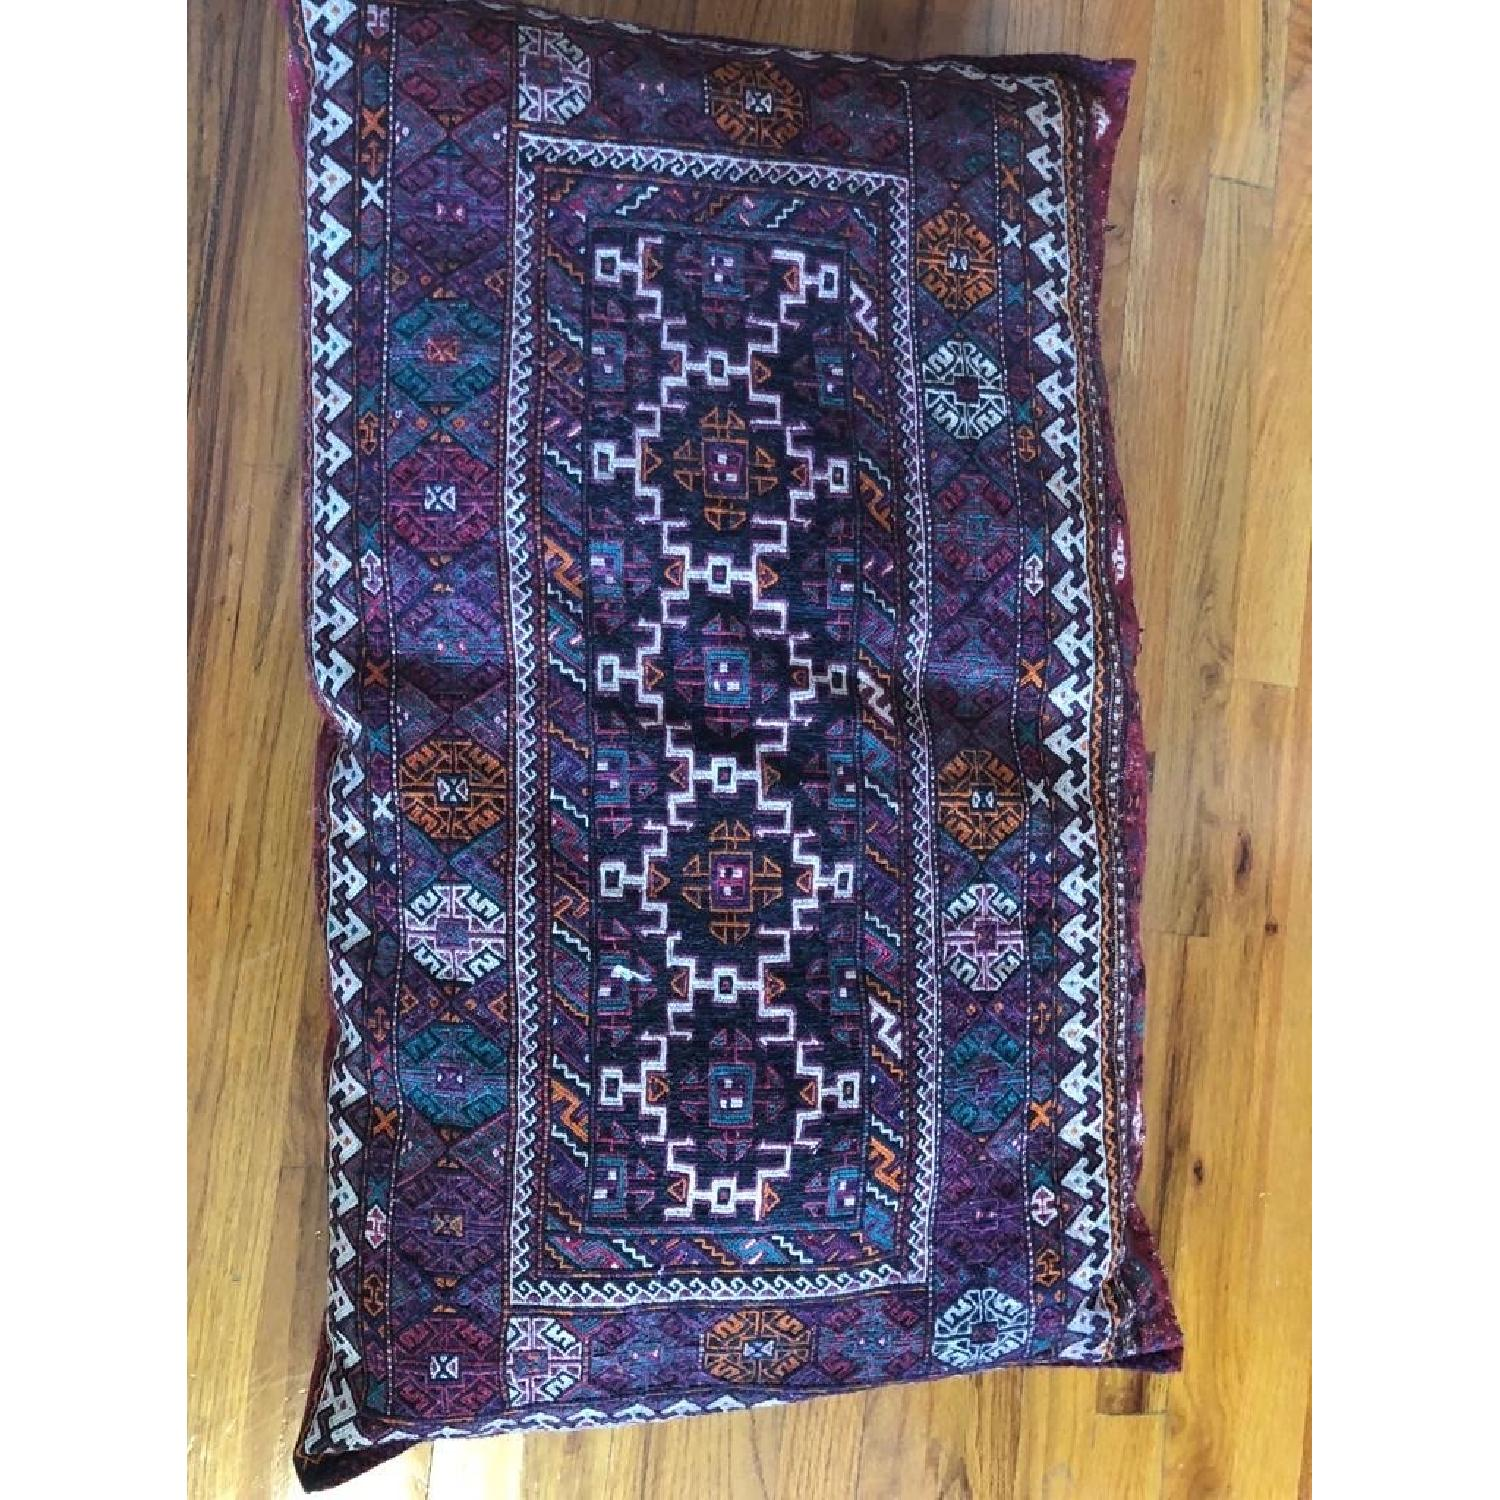 Persian Kilim Floor Pillows-0